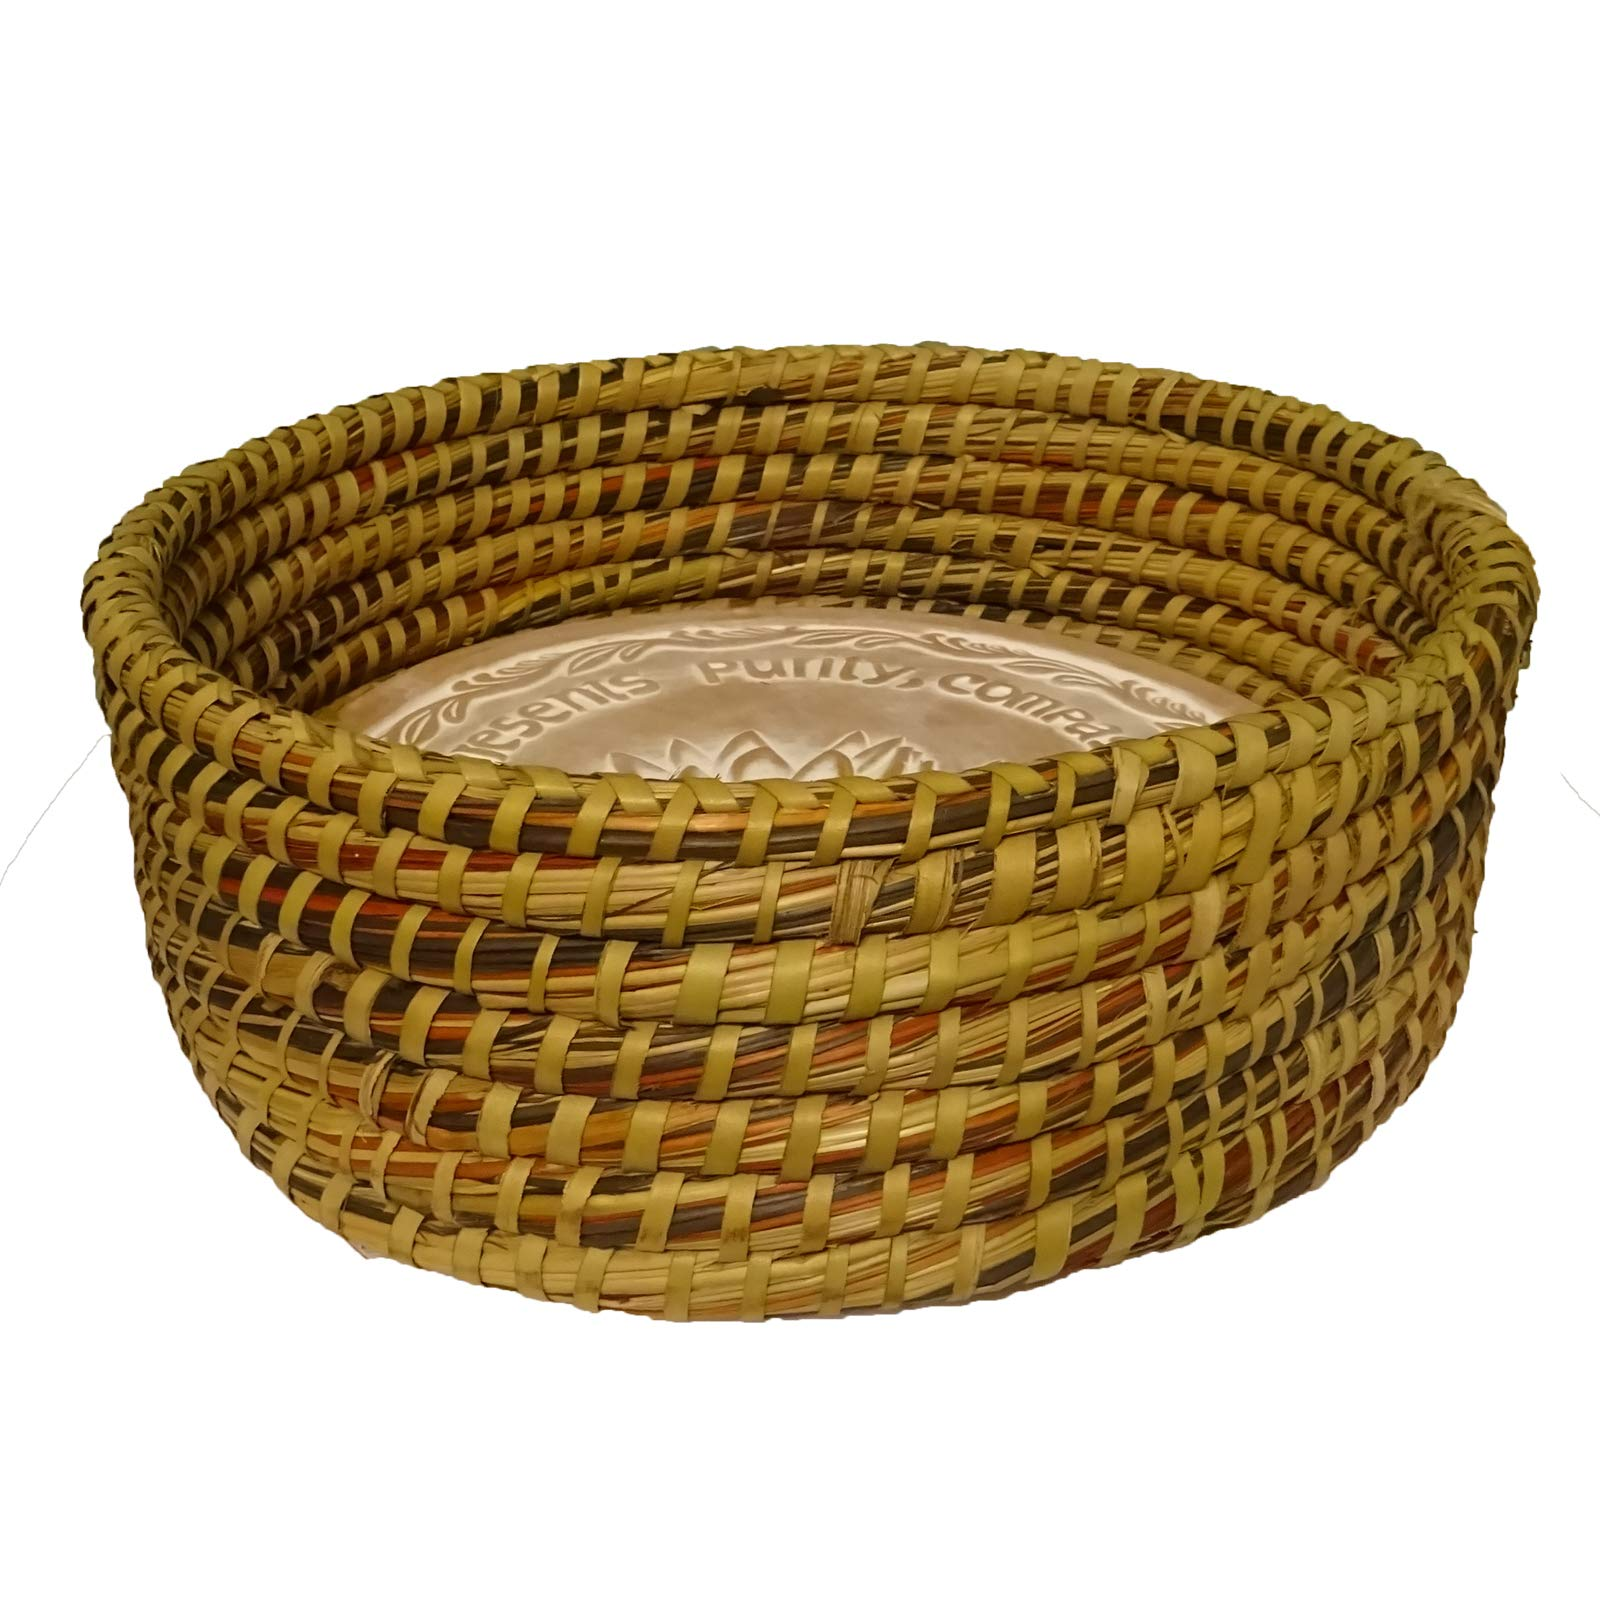 Warming Bread Basket with Lotus Warmer Tile Stone Hand Woven For Rolls Appetizers by The Crabby Nook (Autumn Spice) by The Crabby Nook (Image #1)